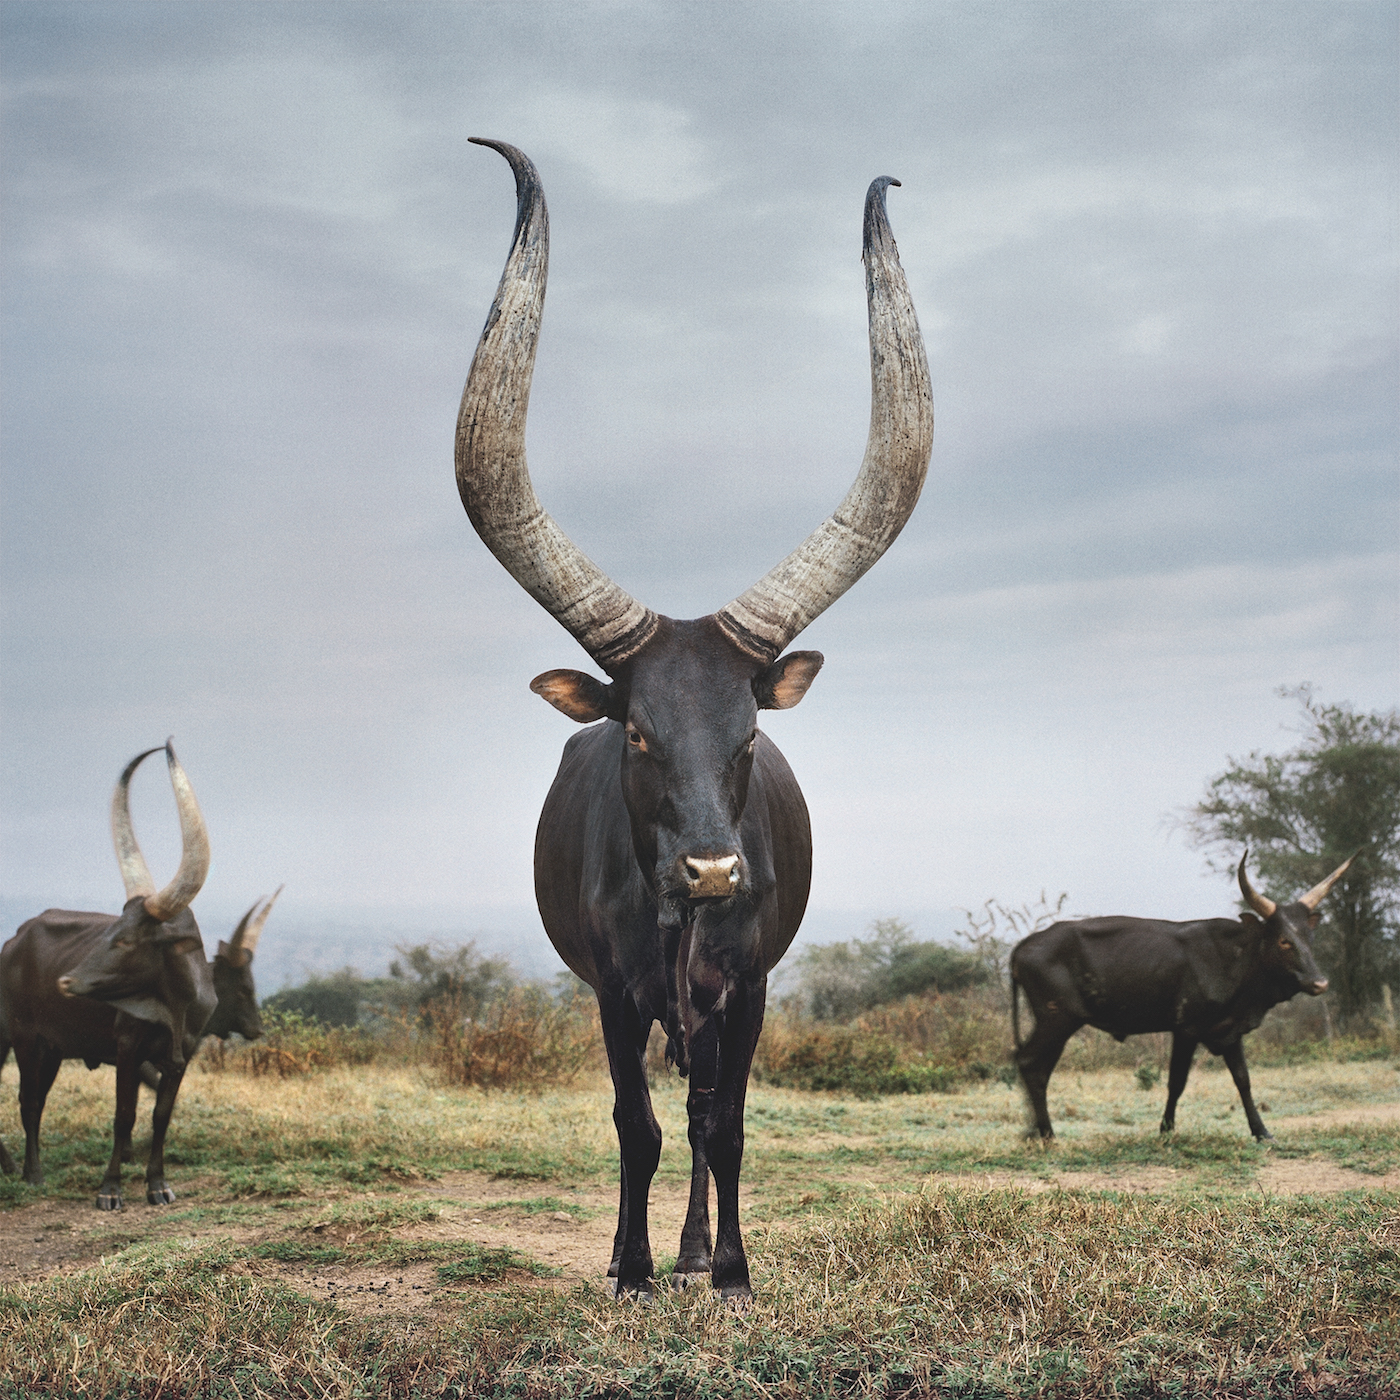 Black Crown Wallpaper A Photographer S Two Year Journey To Document Sacred Cows